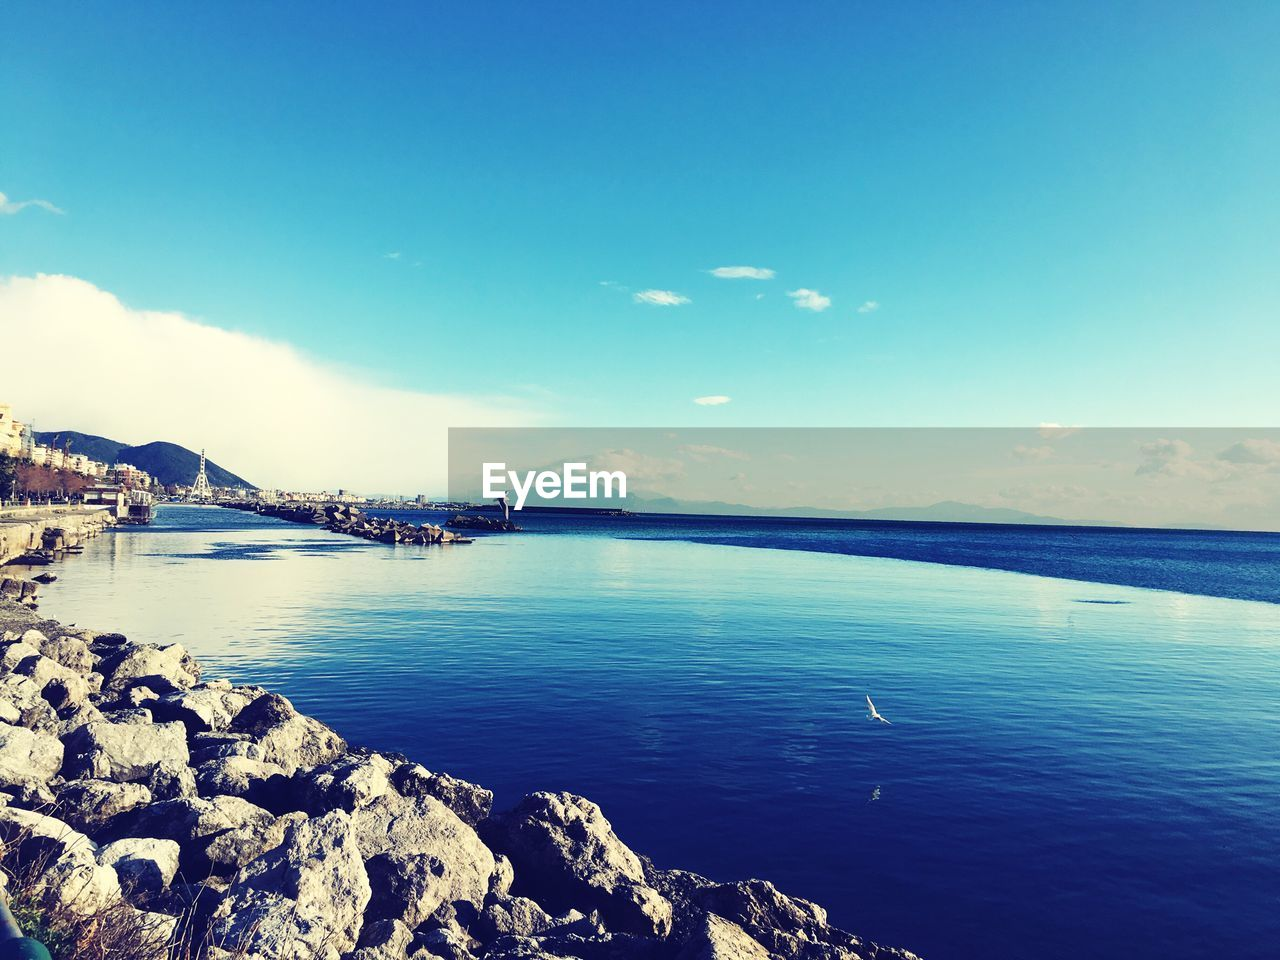 water, sky, scenics - nature, beauty in nature, sea, blue, tranquil scene, architecture, nature, built structure, tranquility, cloud - sky, no people, building exterior, waterfront, idyllic, rock, outdoors, transportation